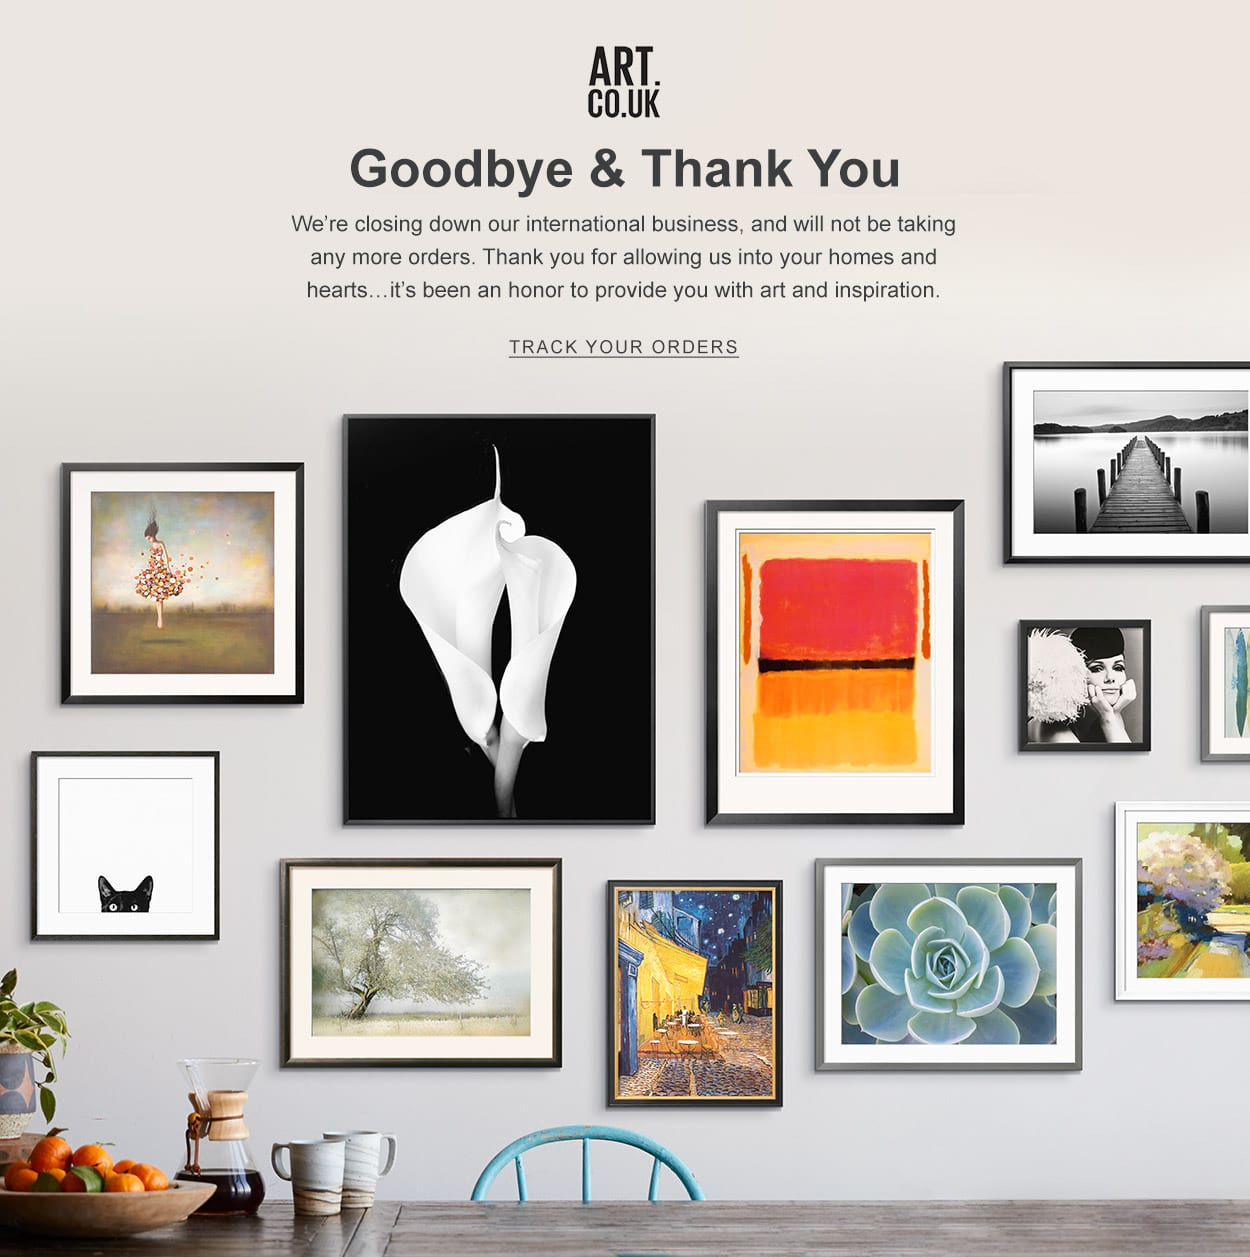 Art.UK Closing Business Message